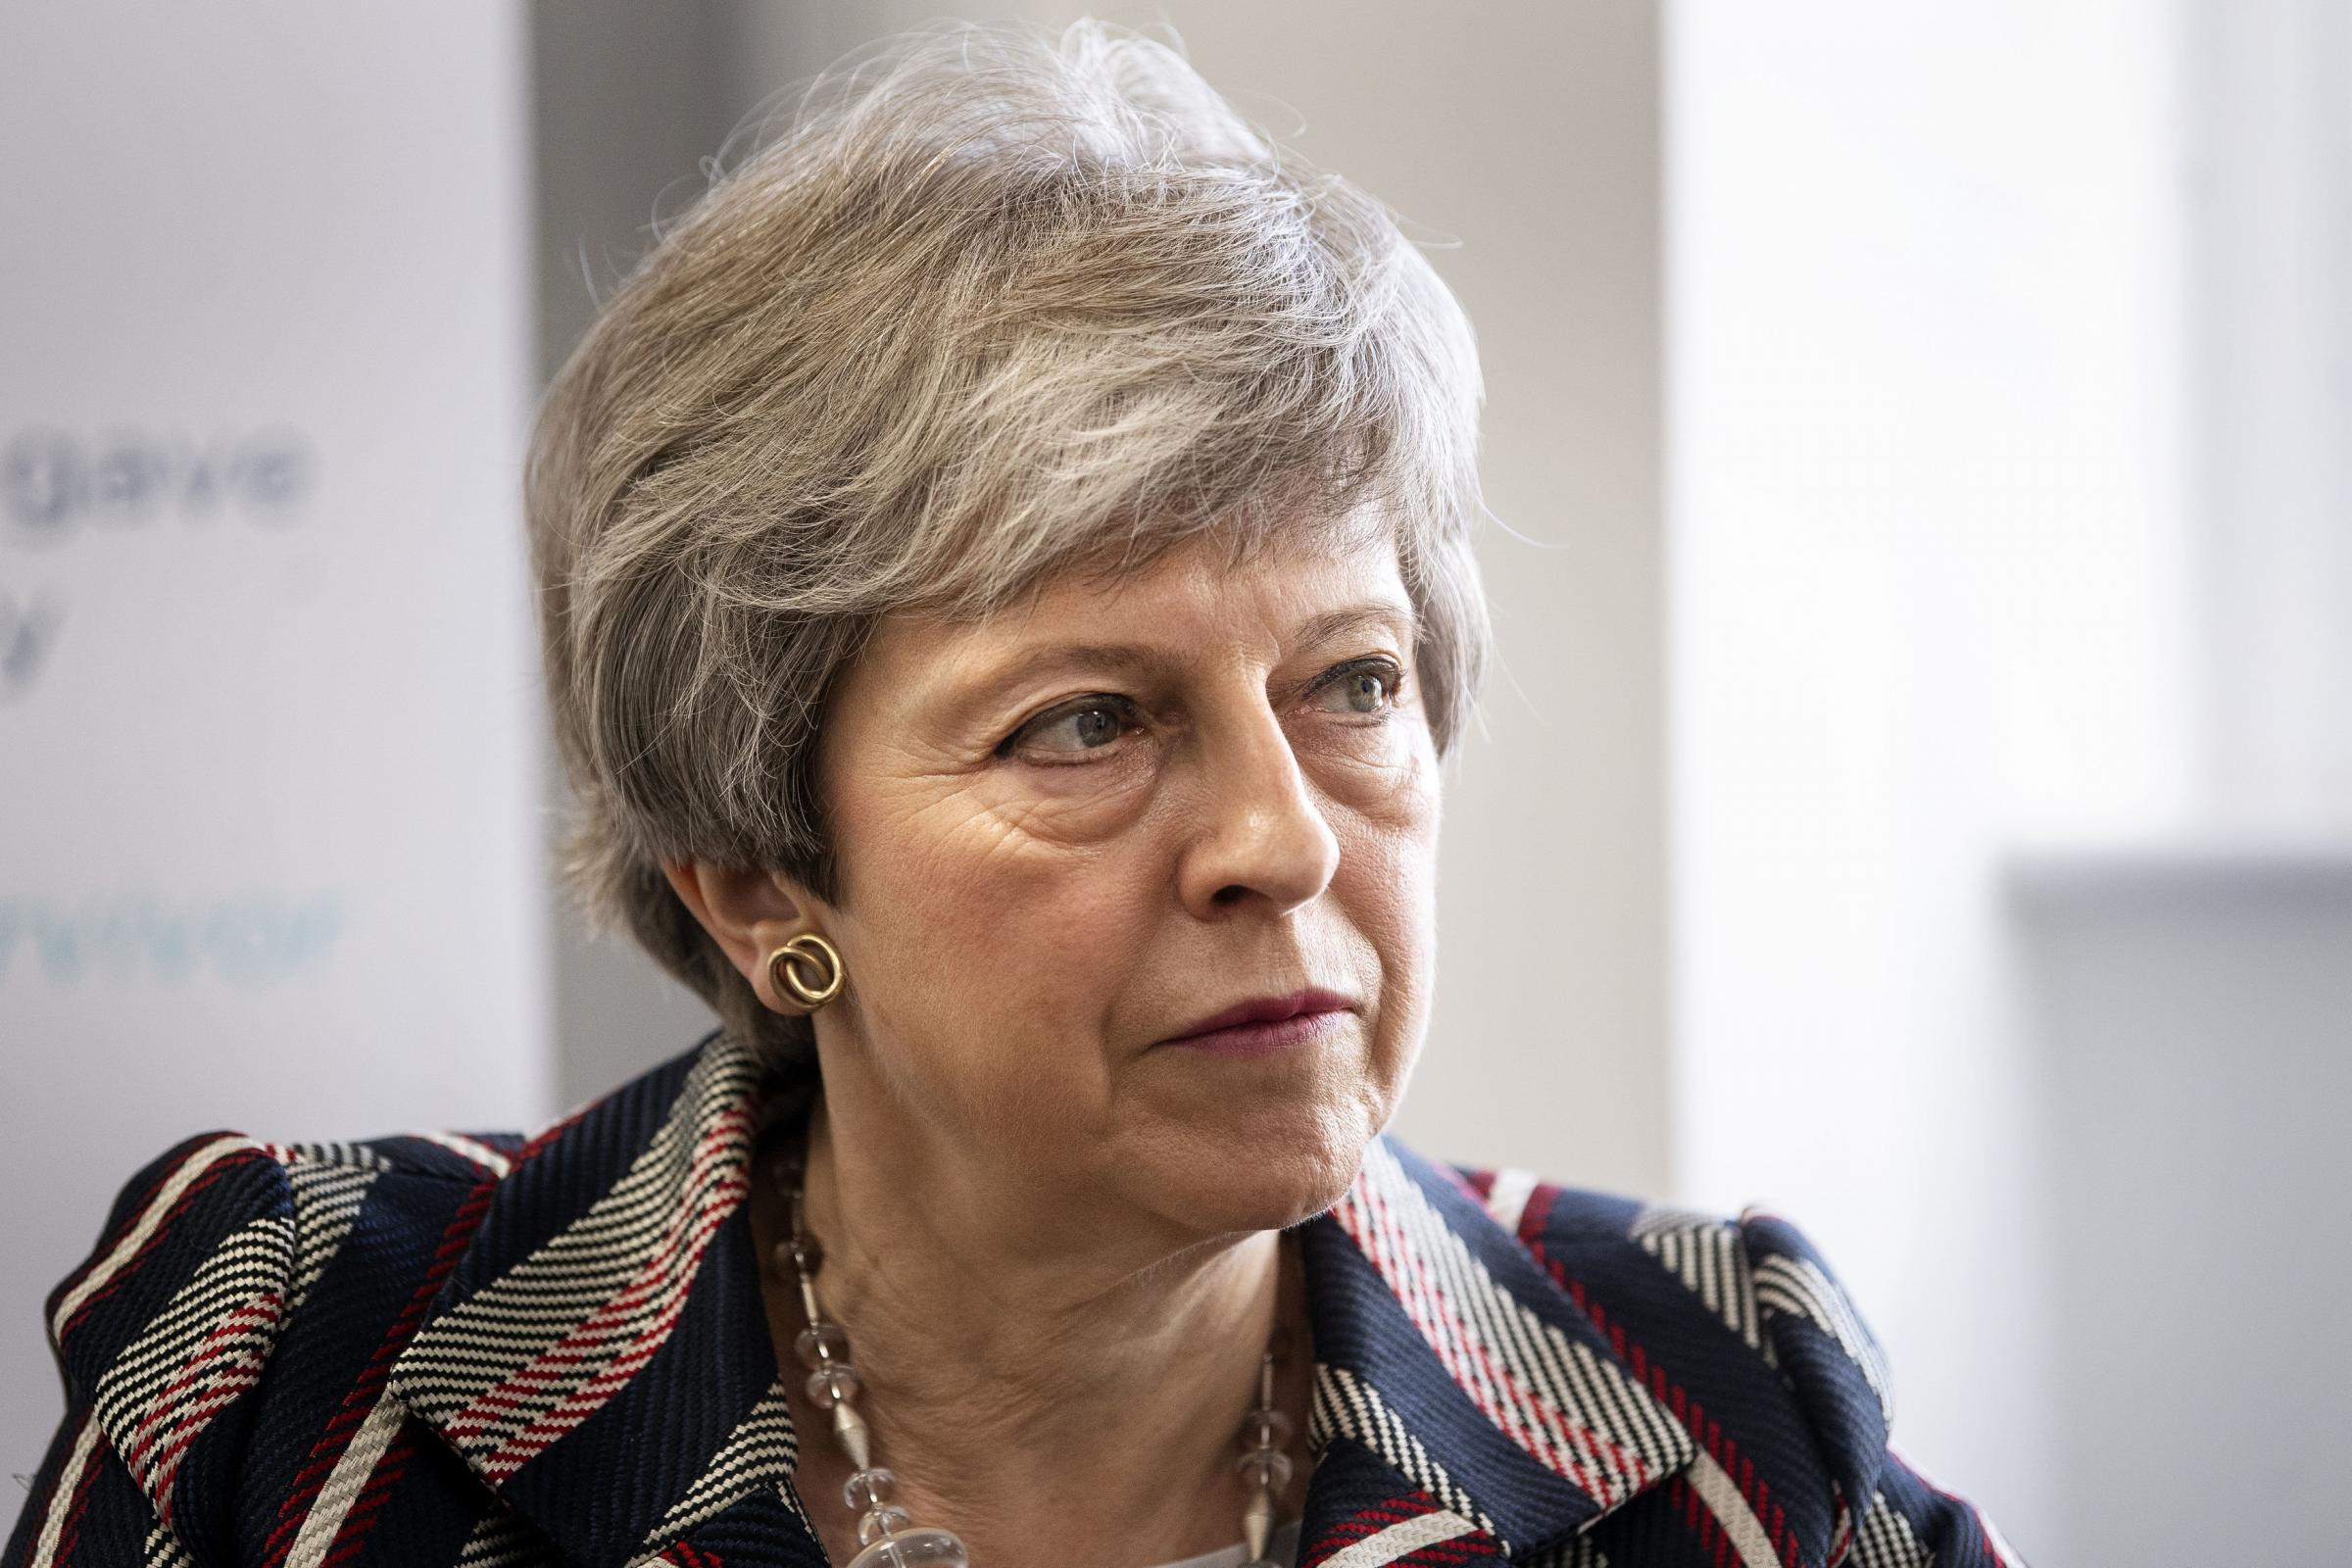 Theresa May has agreed to set out the timetable for her departure early next month